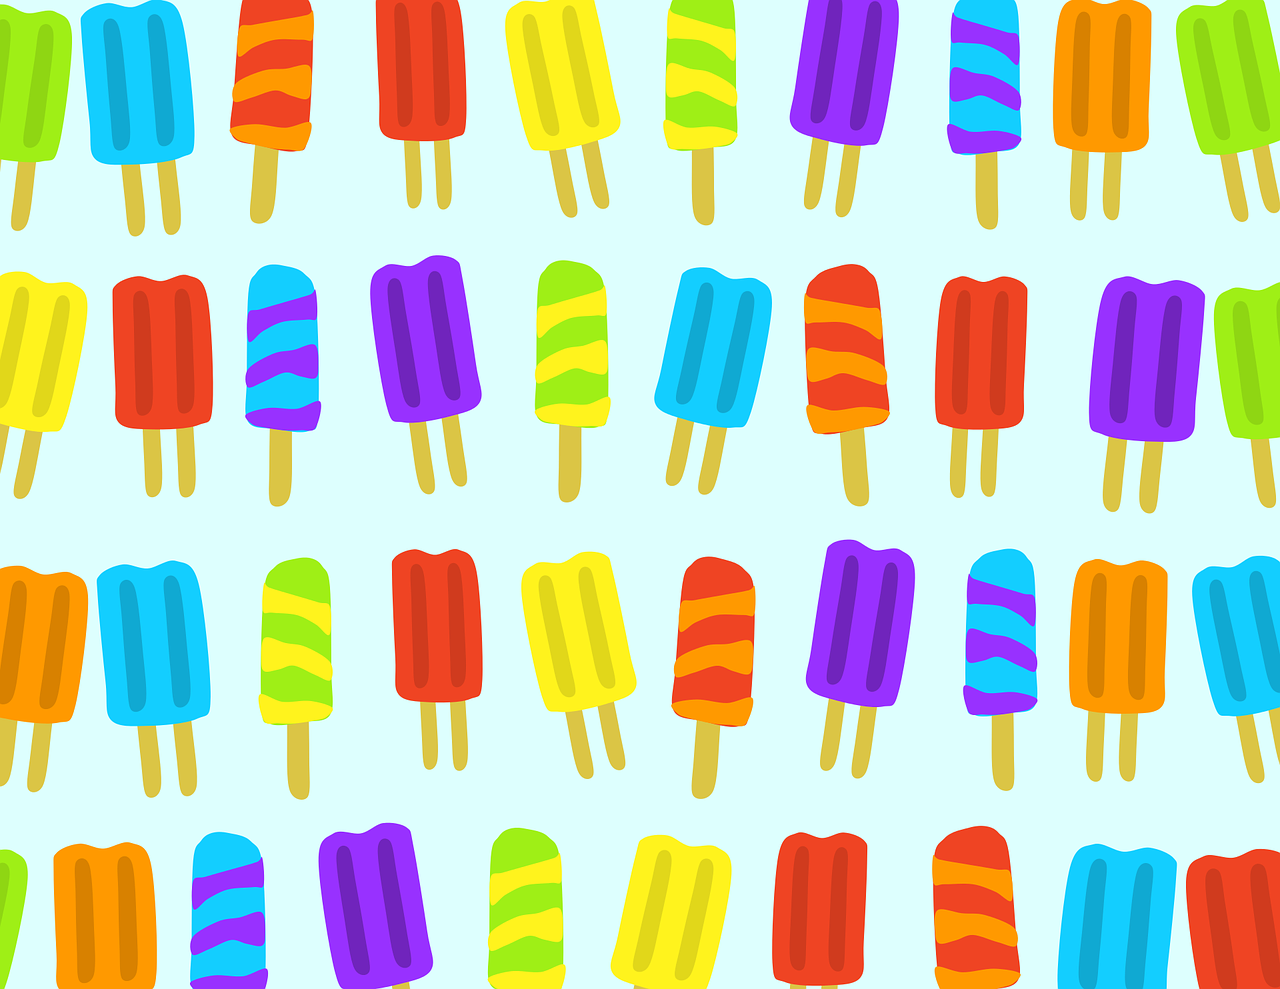 Summer Popsicles To Cool Off With in addition Royalty Free Stock Photo Cold Call Image27767495 furthermore Blood as well Book On Opposites as well Editorial Photo Lincoln Memorial Facade Washington Dc United States Image47440651. on block of ice clipart